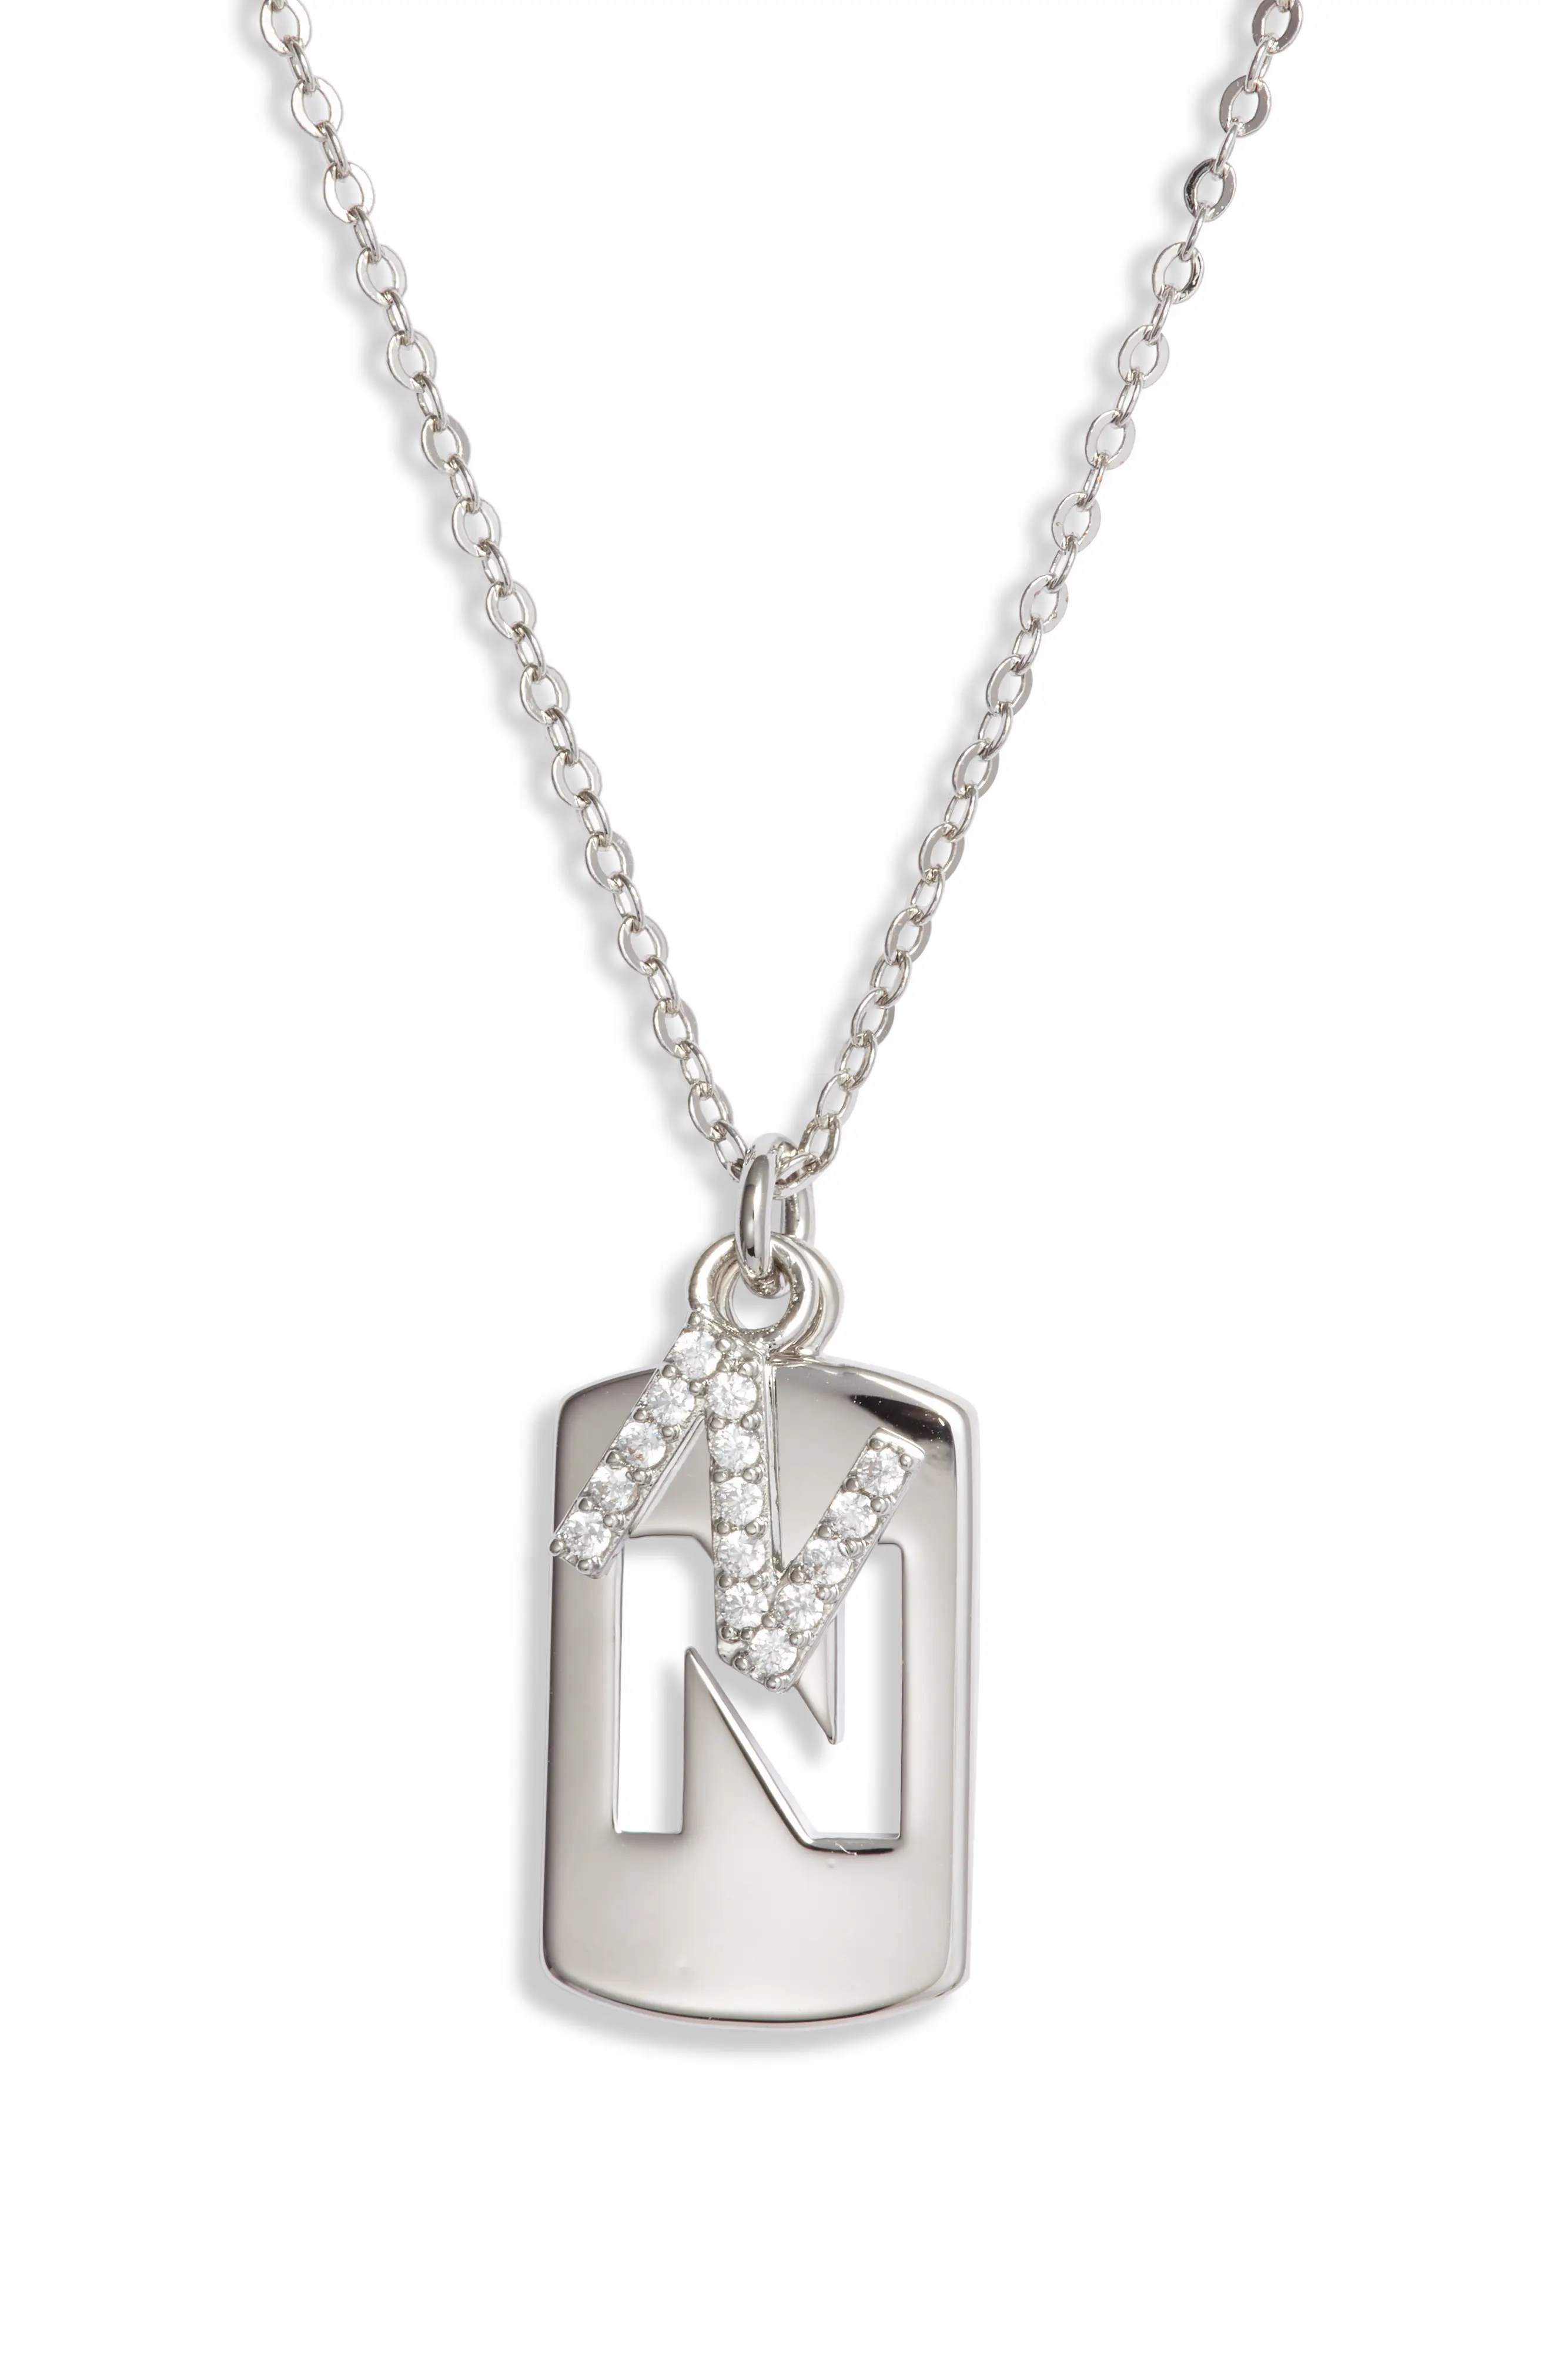 jewelry for women clearance nordstrom